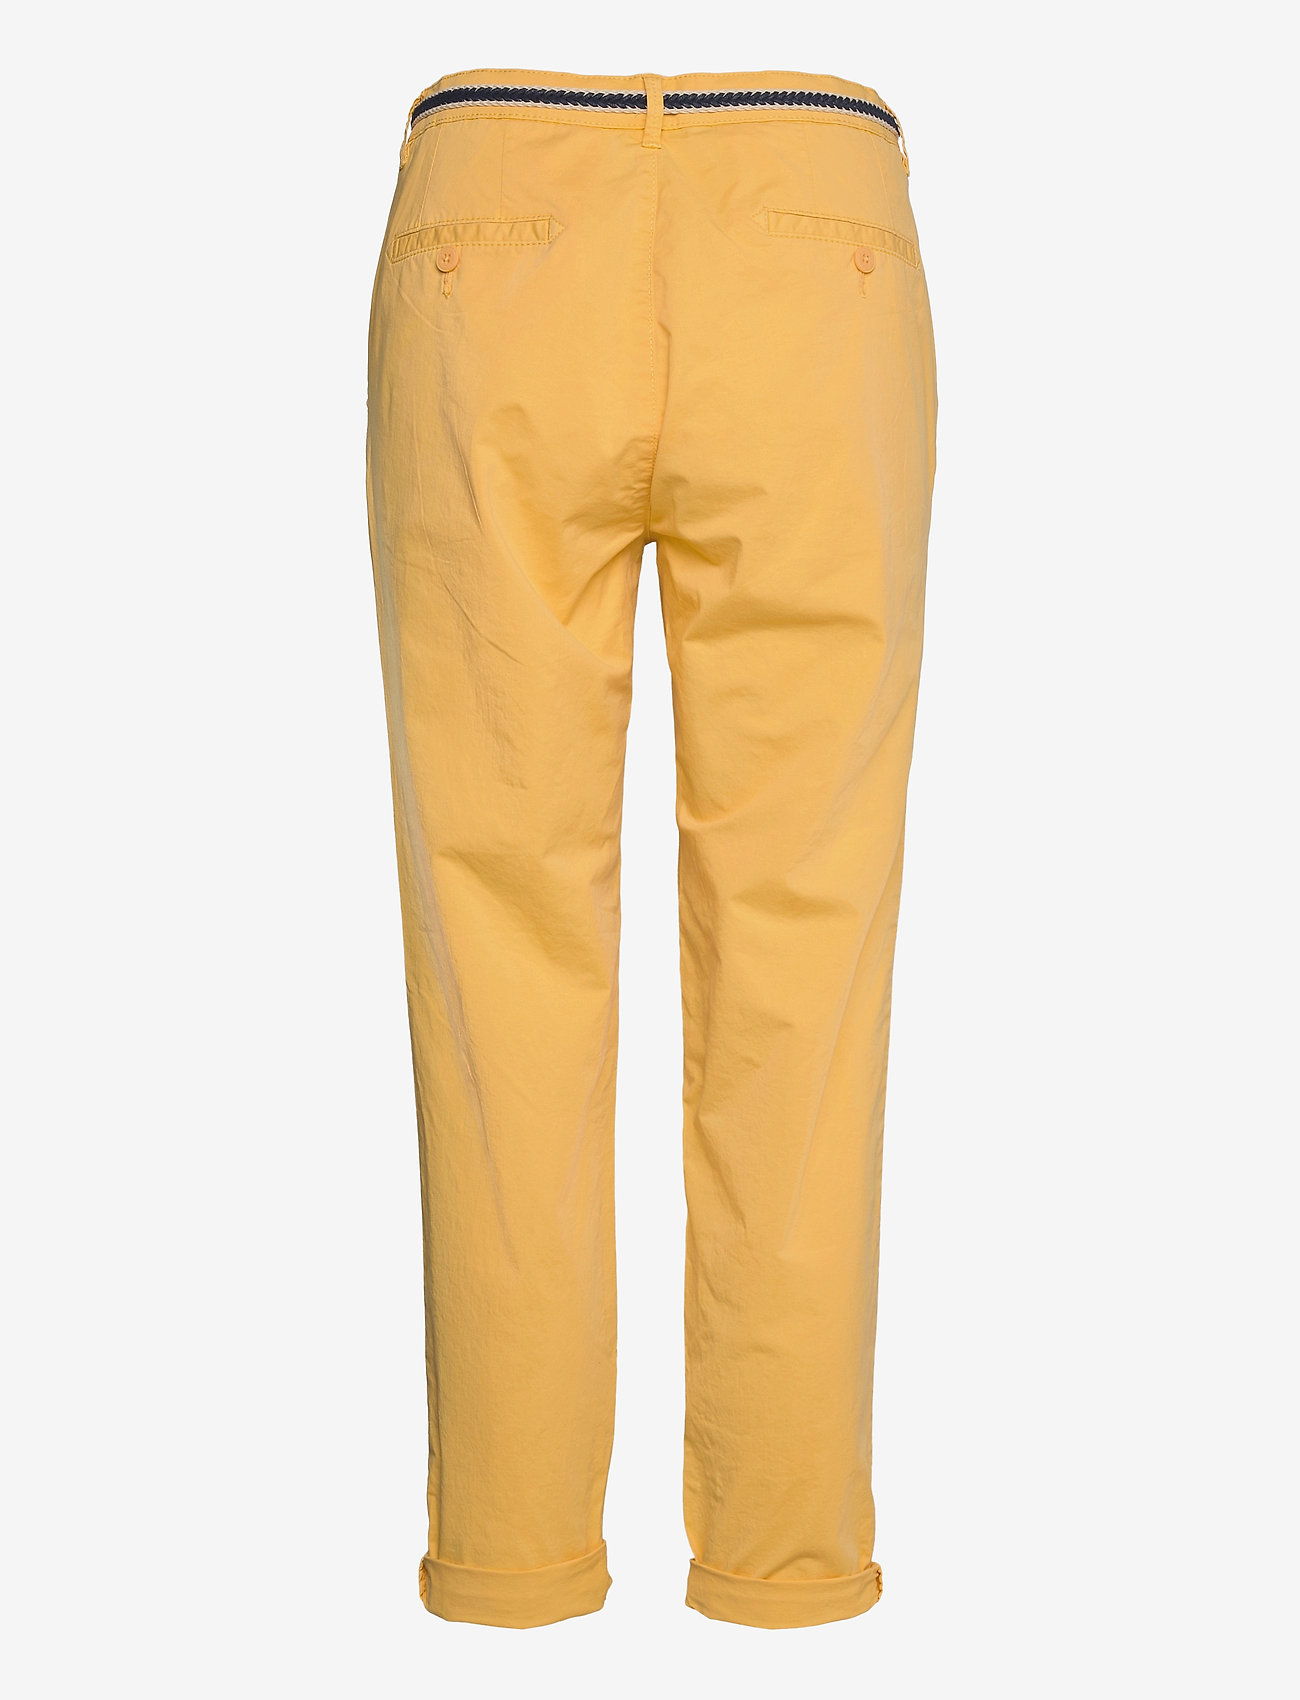 Esprit Casual - Pants woven - chinos - sunflower yellow - 1